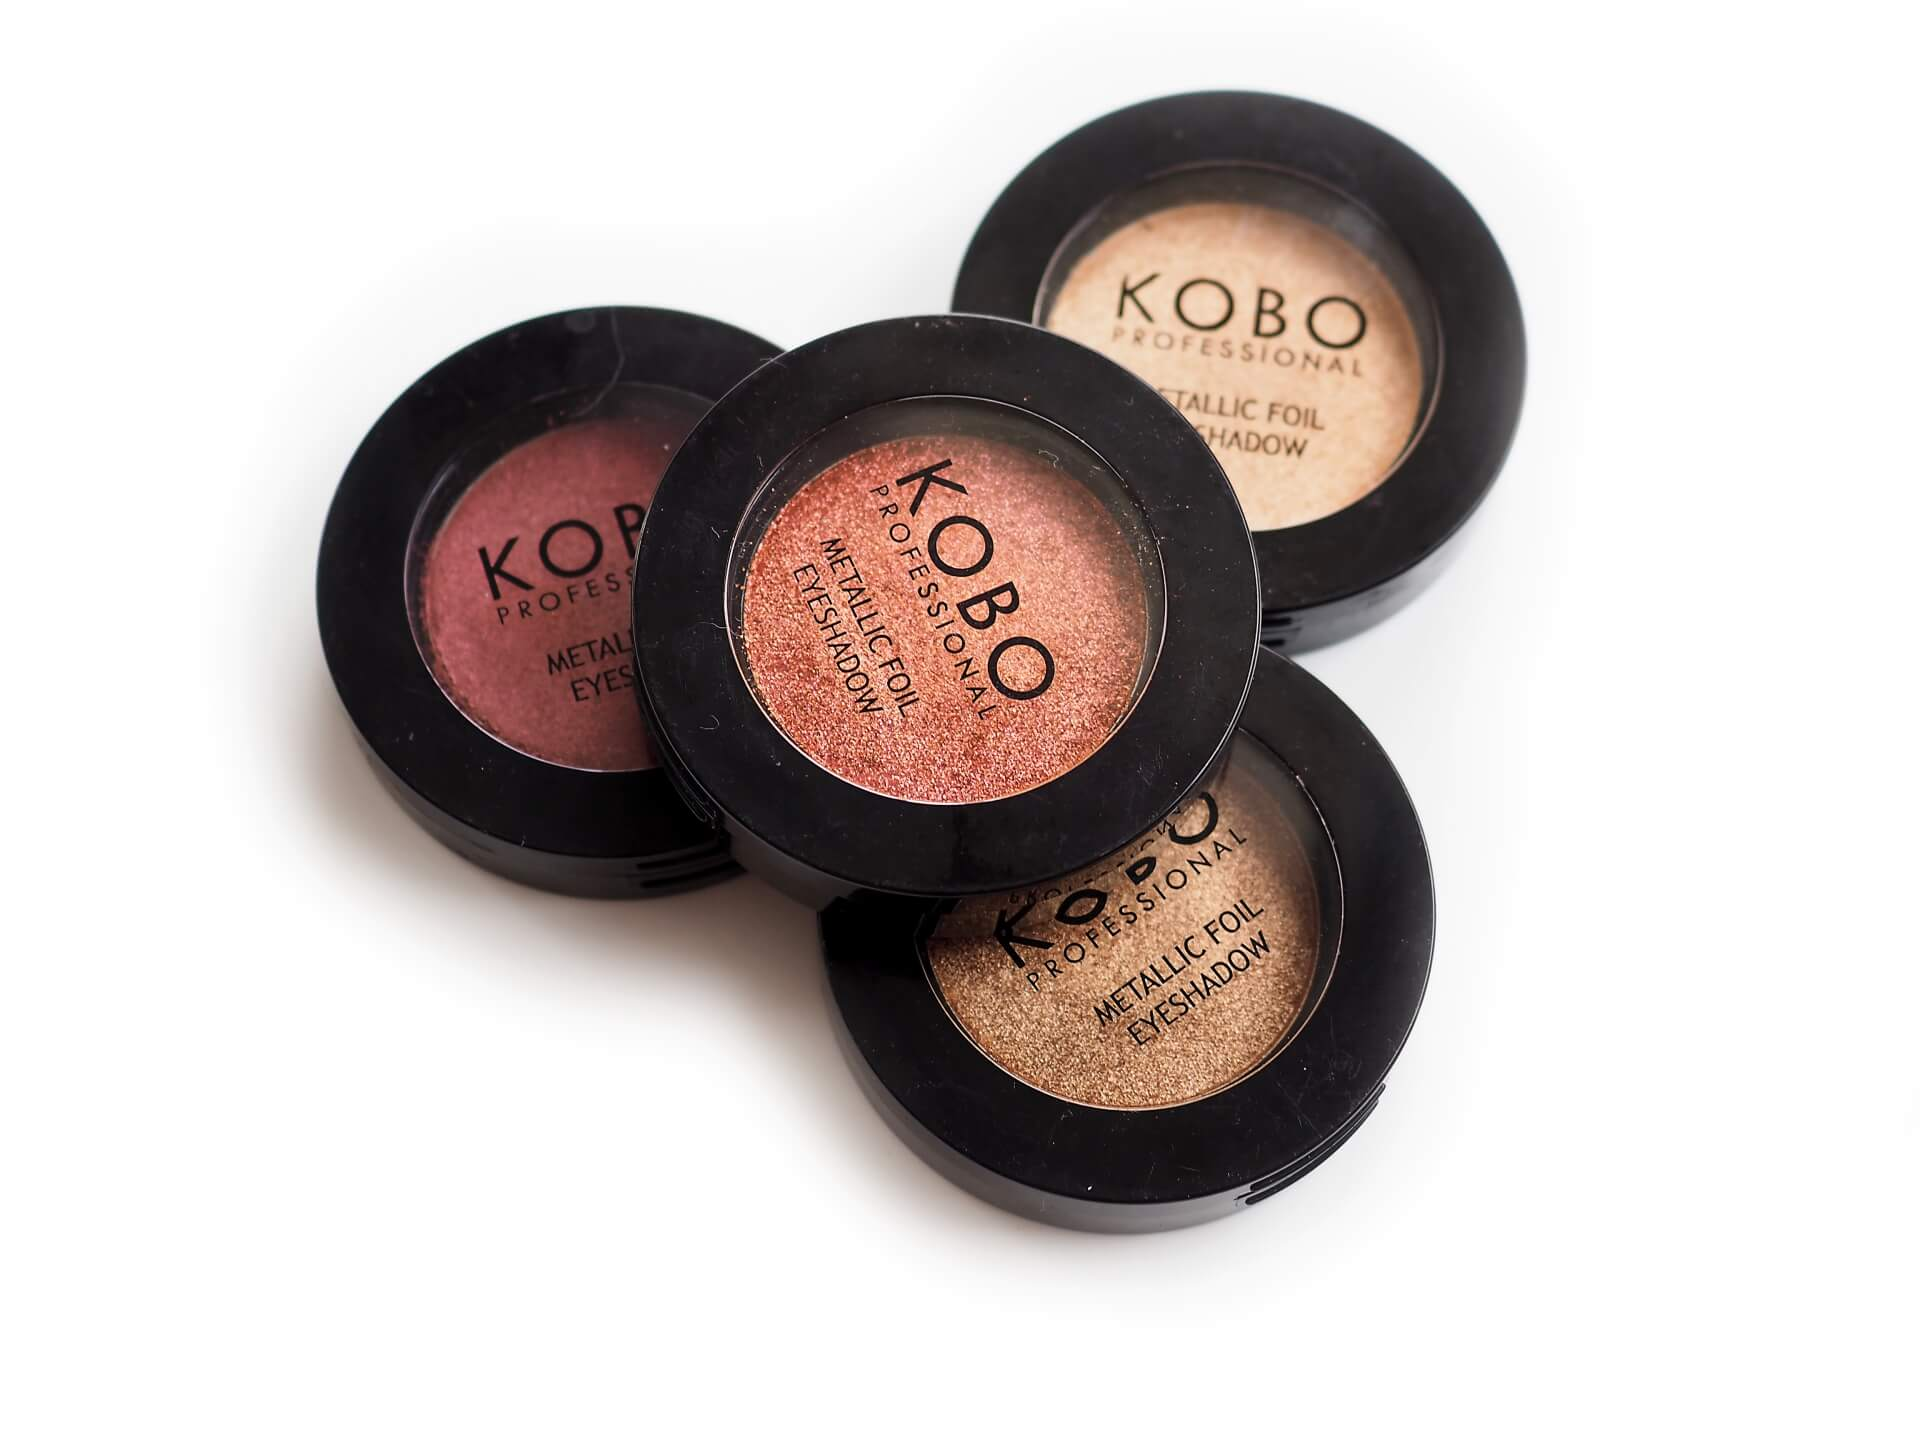 Kobo Professional Metallic Foil Eyeshadow